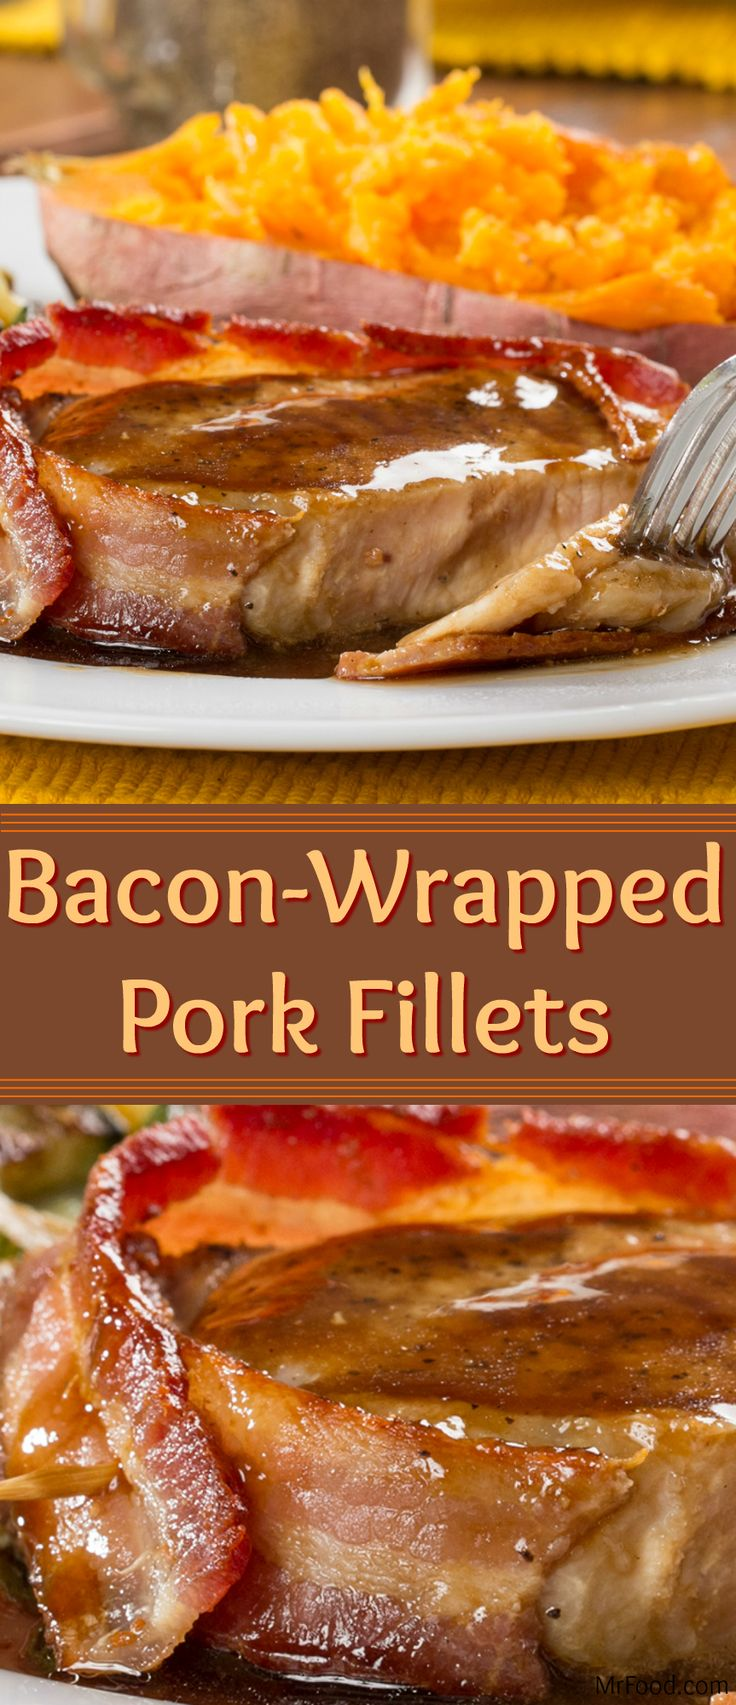 Recreate an entree that's restaurant-fancy in your own kitchen with our recipe for Bacon Wrapped Pork Fillets. Perfectly cooked pork loin fillets get wrapped up in pan-fried bacon strips and drizzled with a savory and flavor-packed glaze. It's mouthwatering-good!